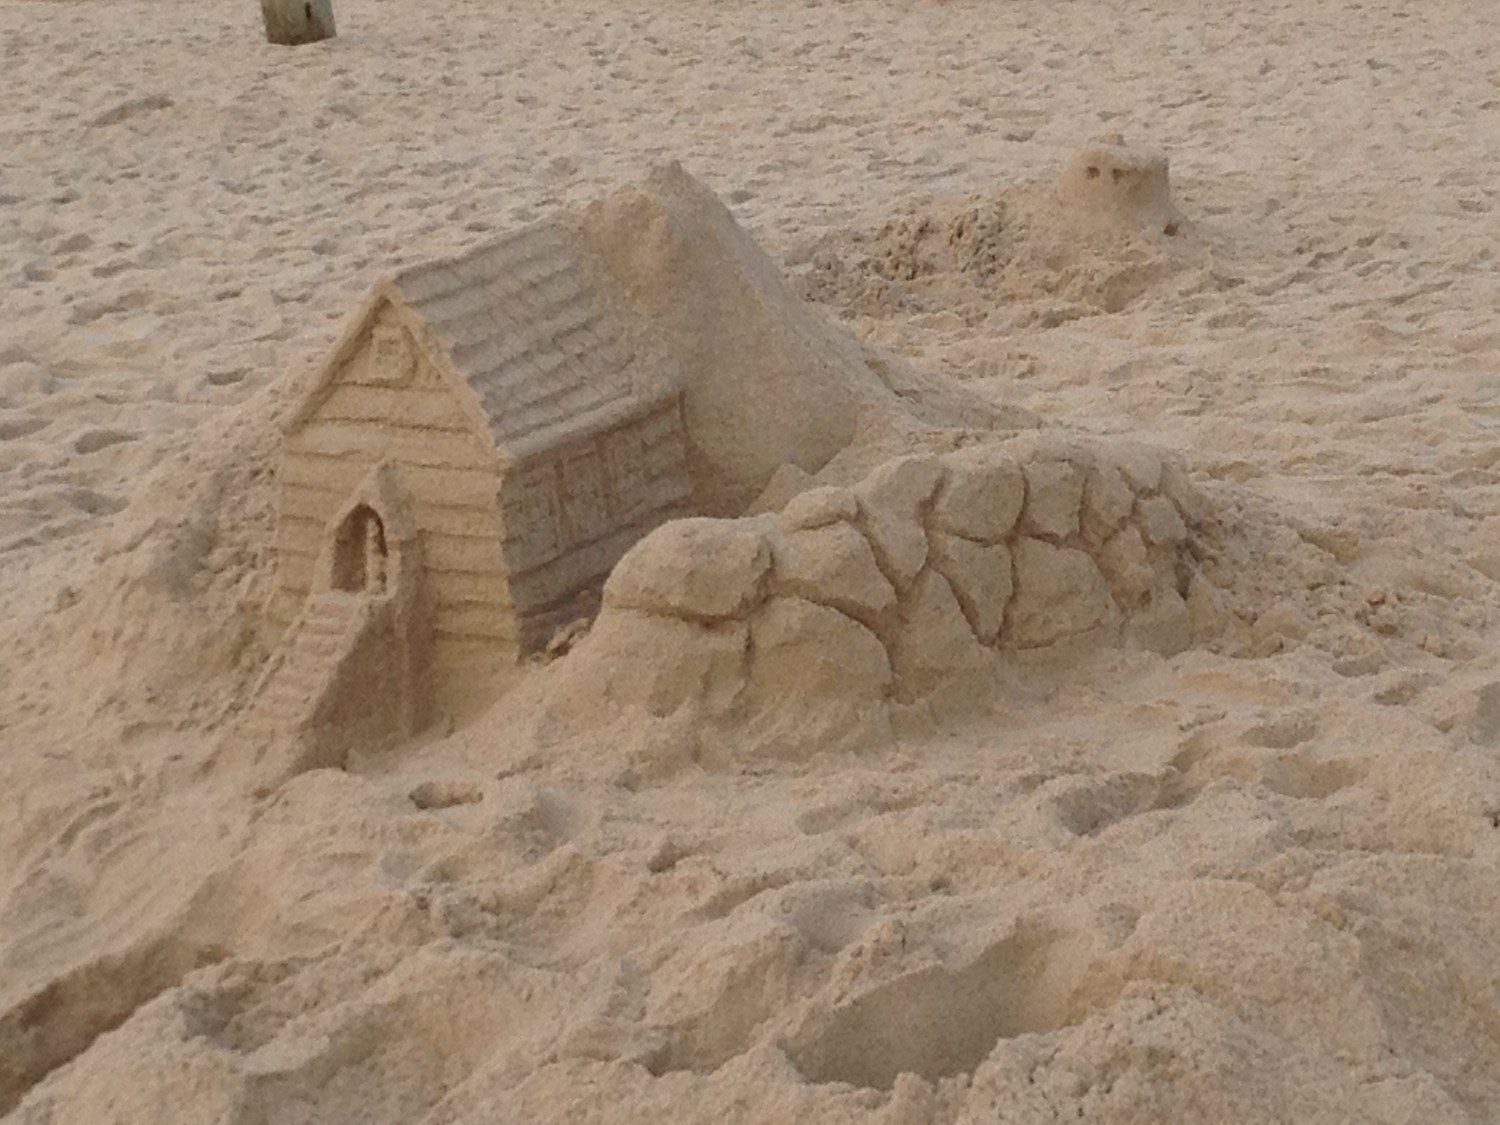 Sand home sculpture at Rehoboth Beach